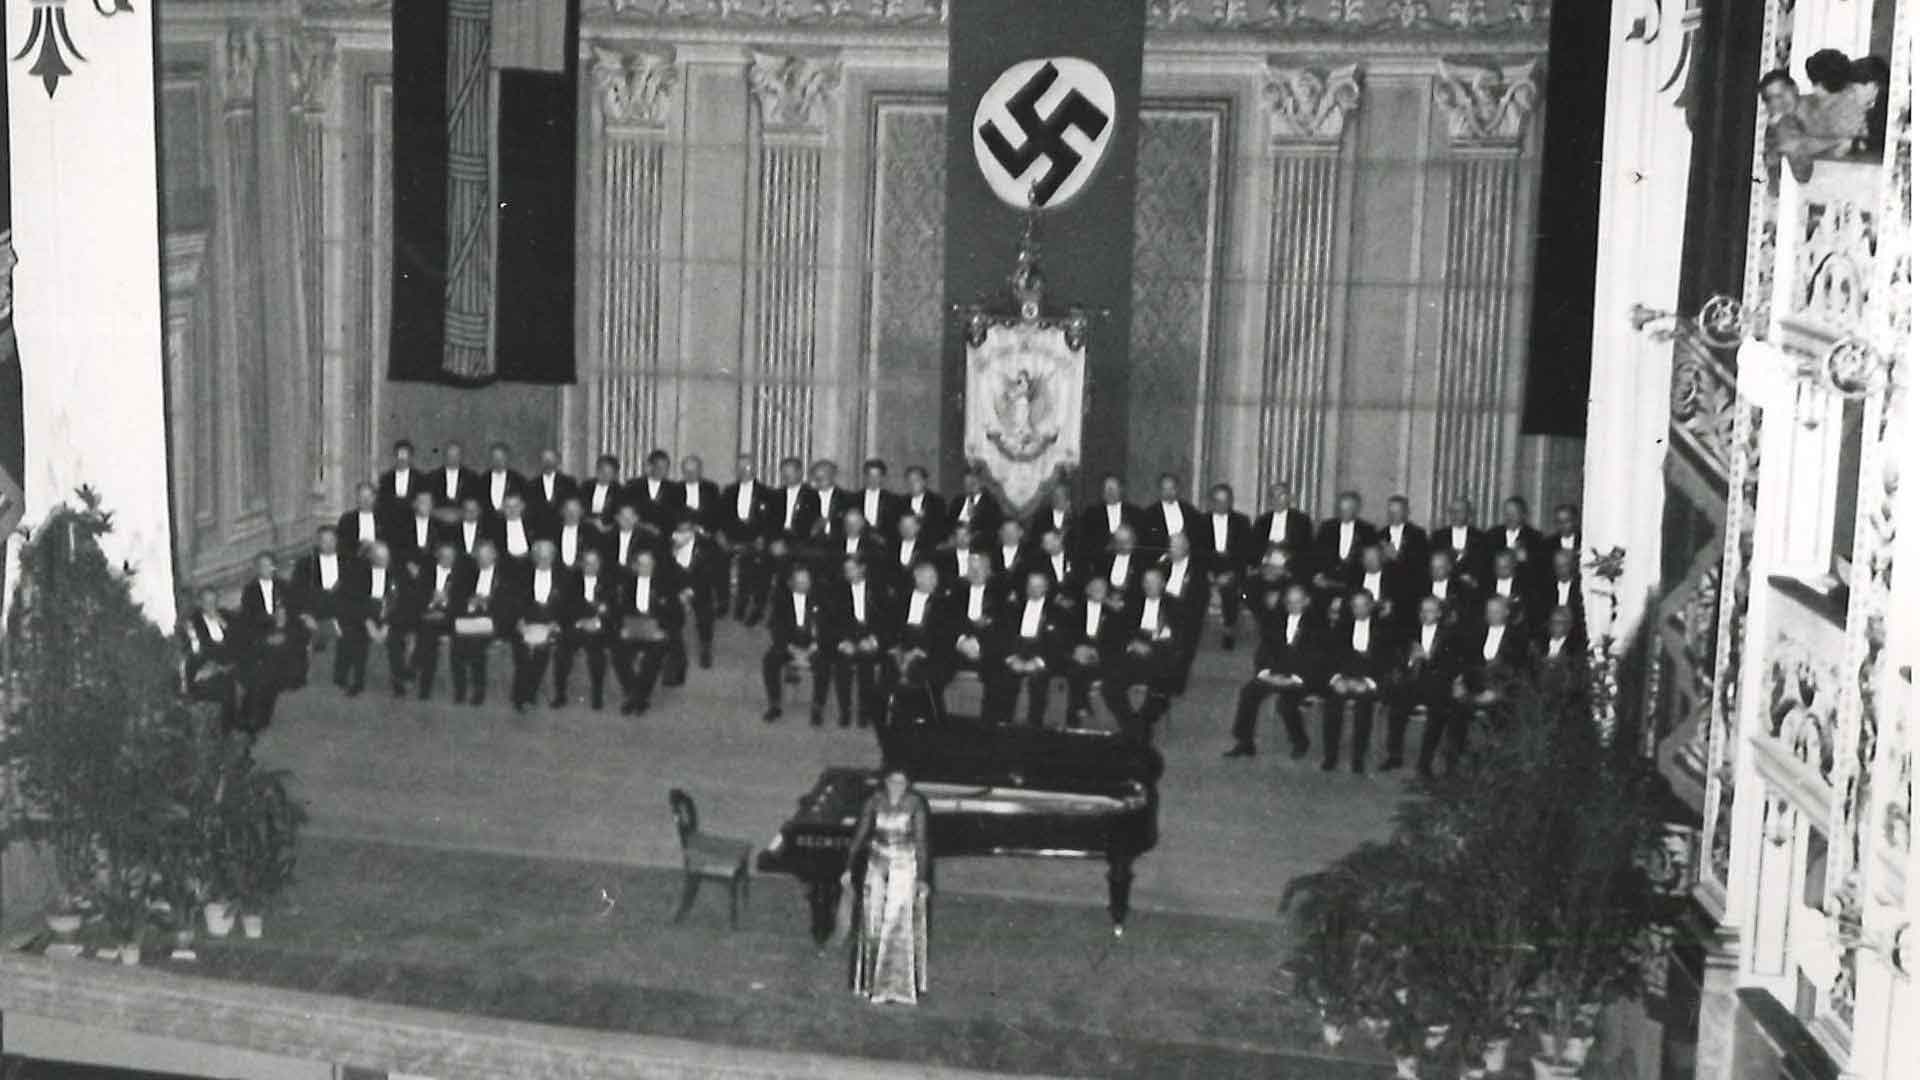 German concert at the Teatro Comunale, 1942 (ISRT)